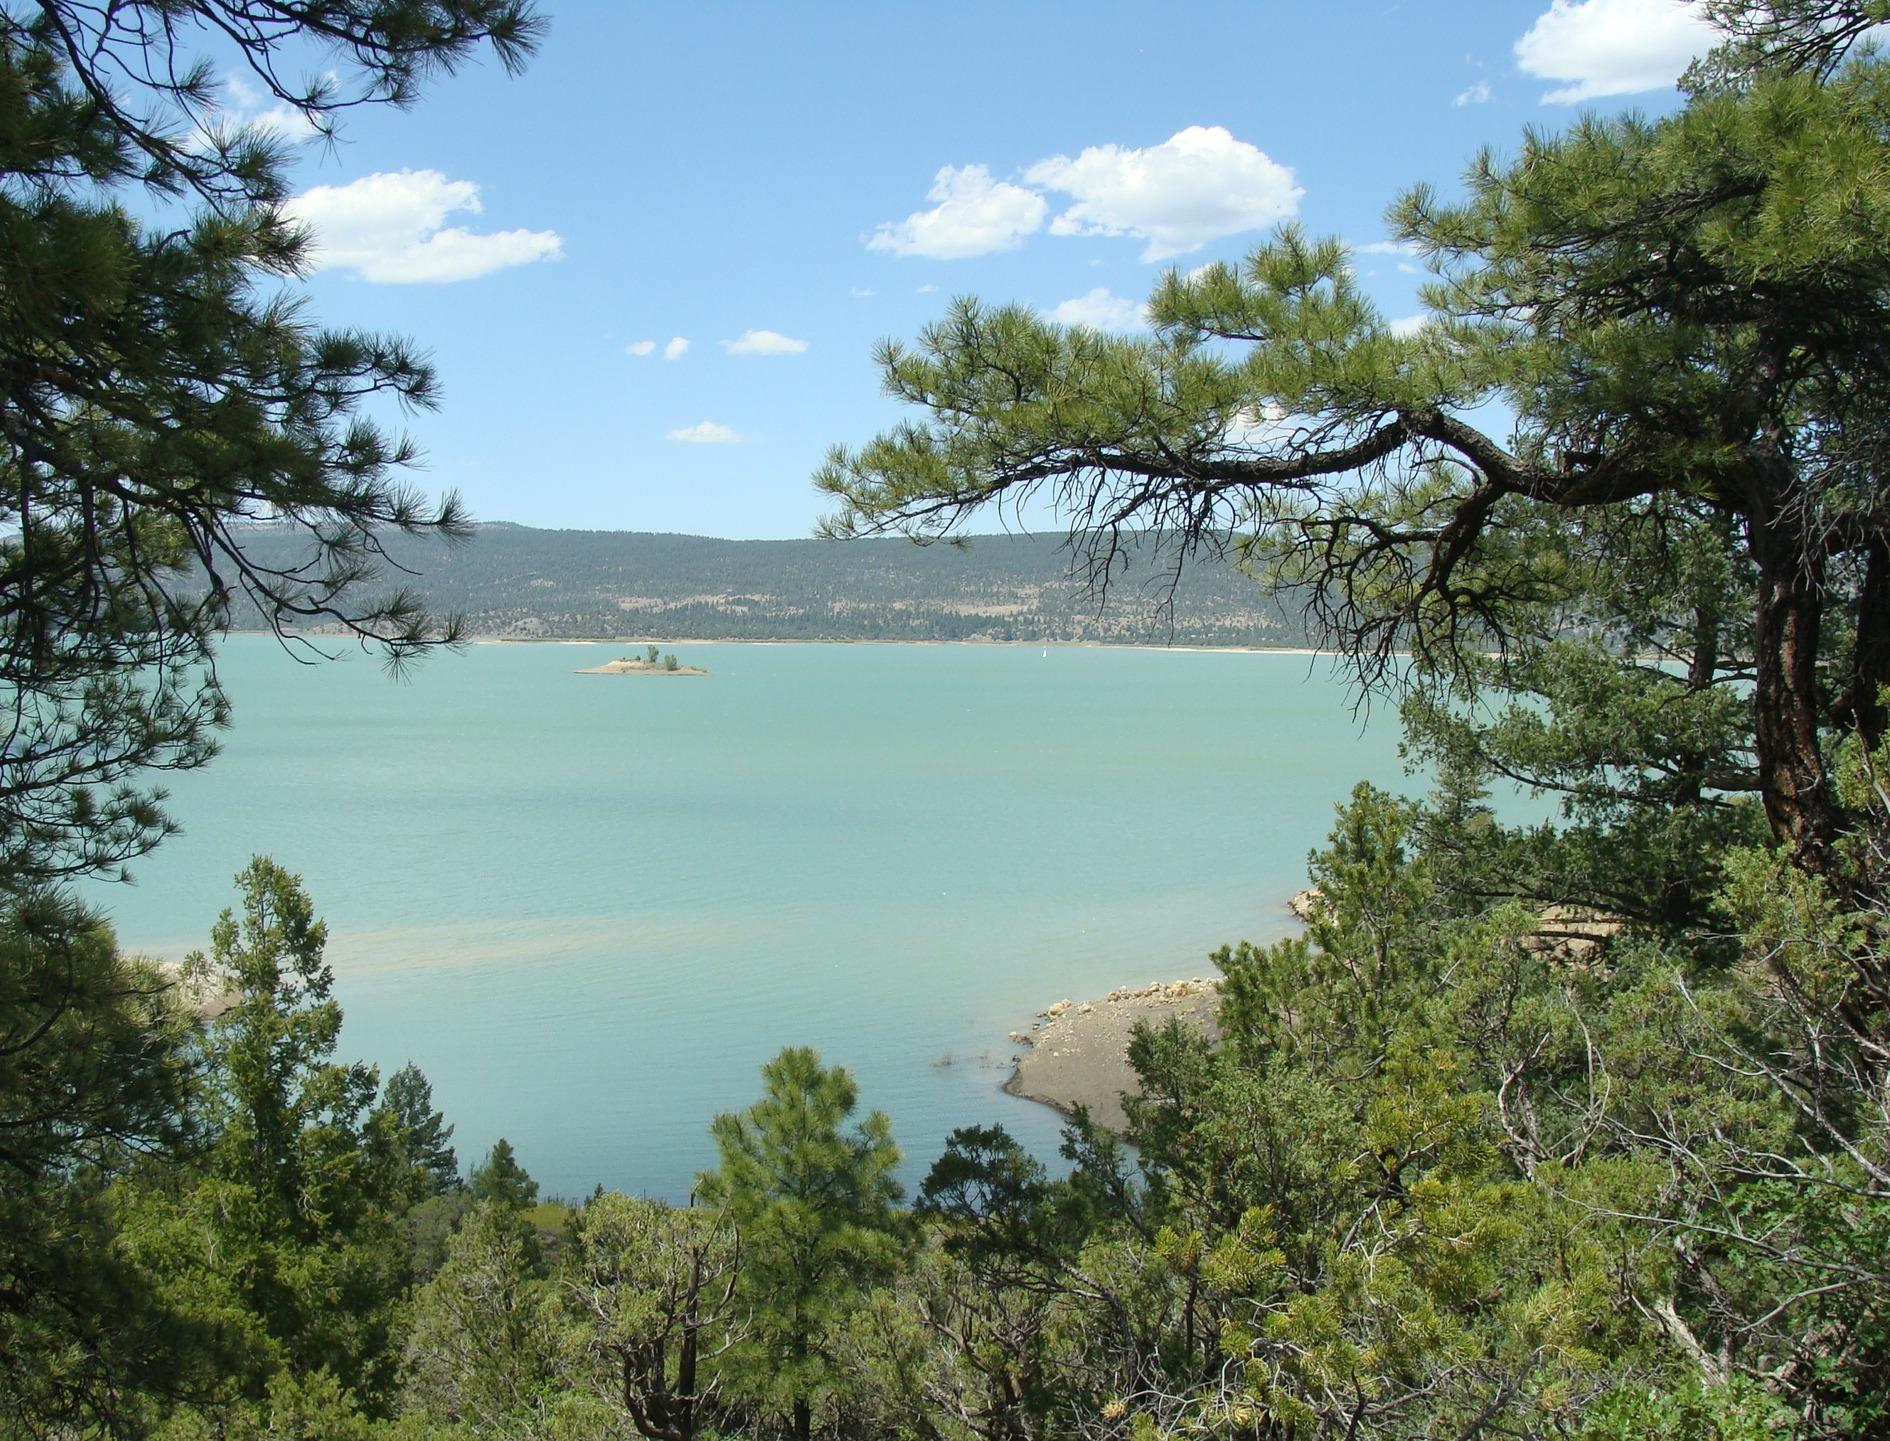 Heron lake new mexico camping reservations campgrounds